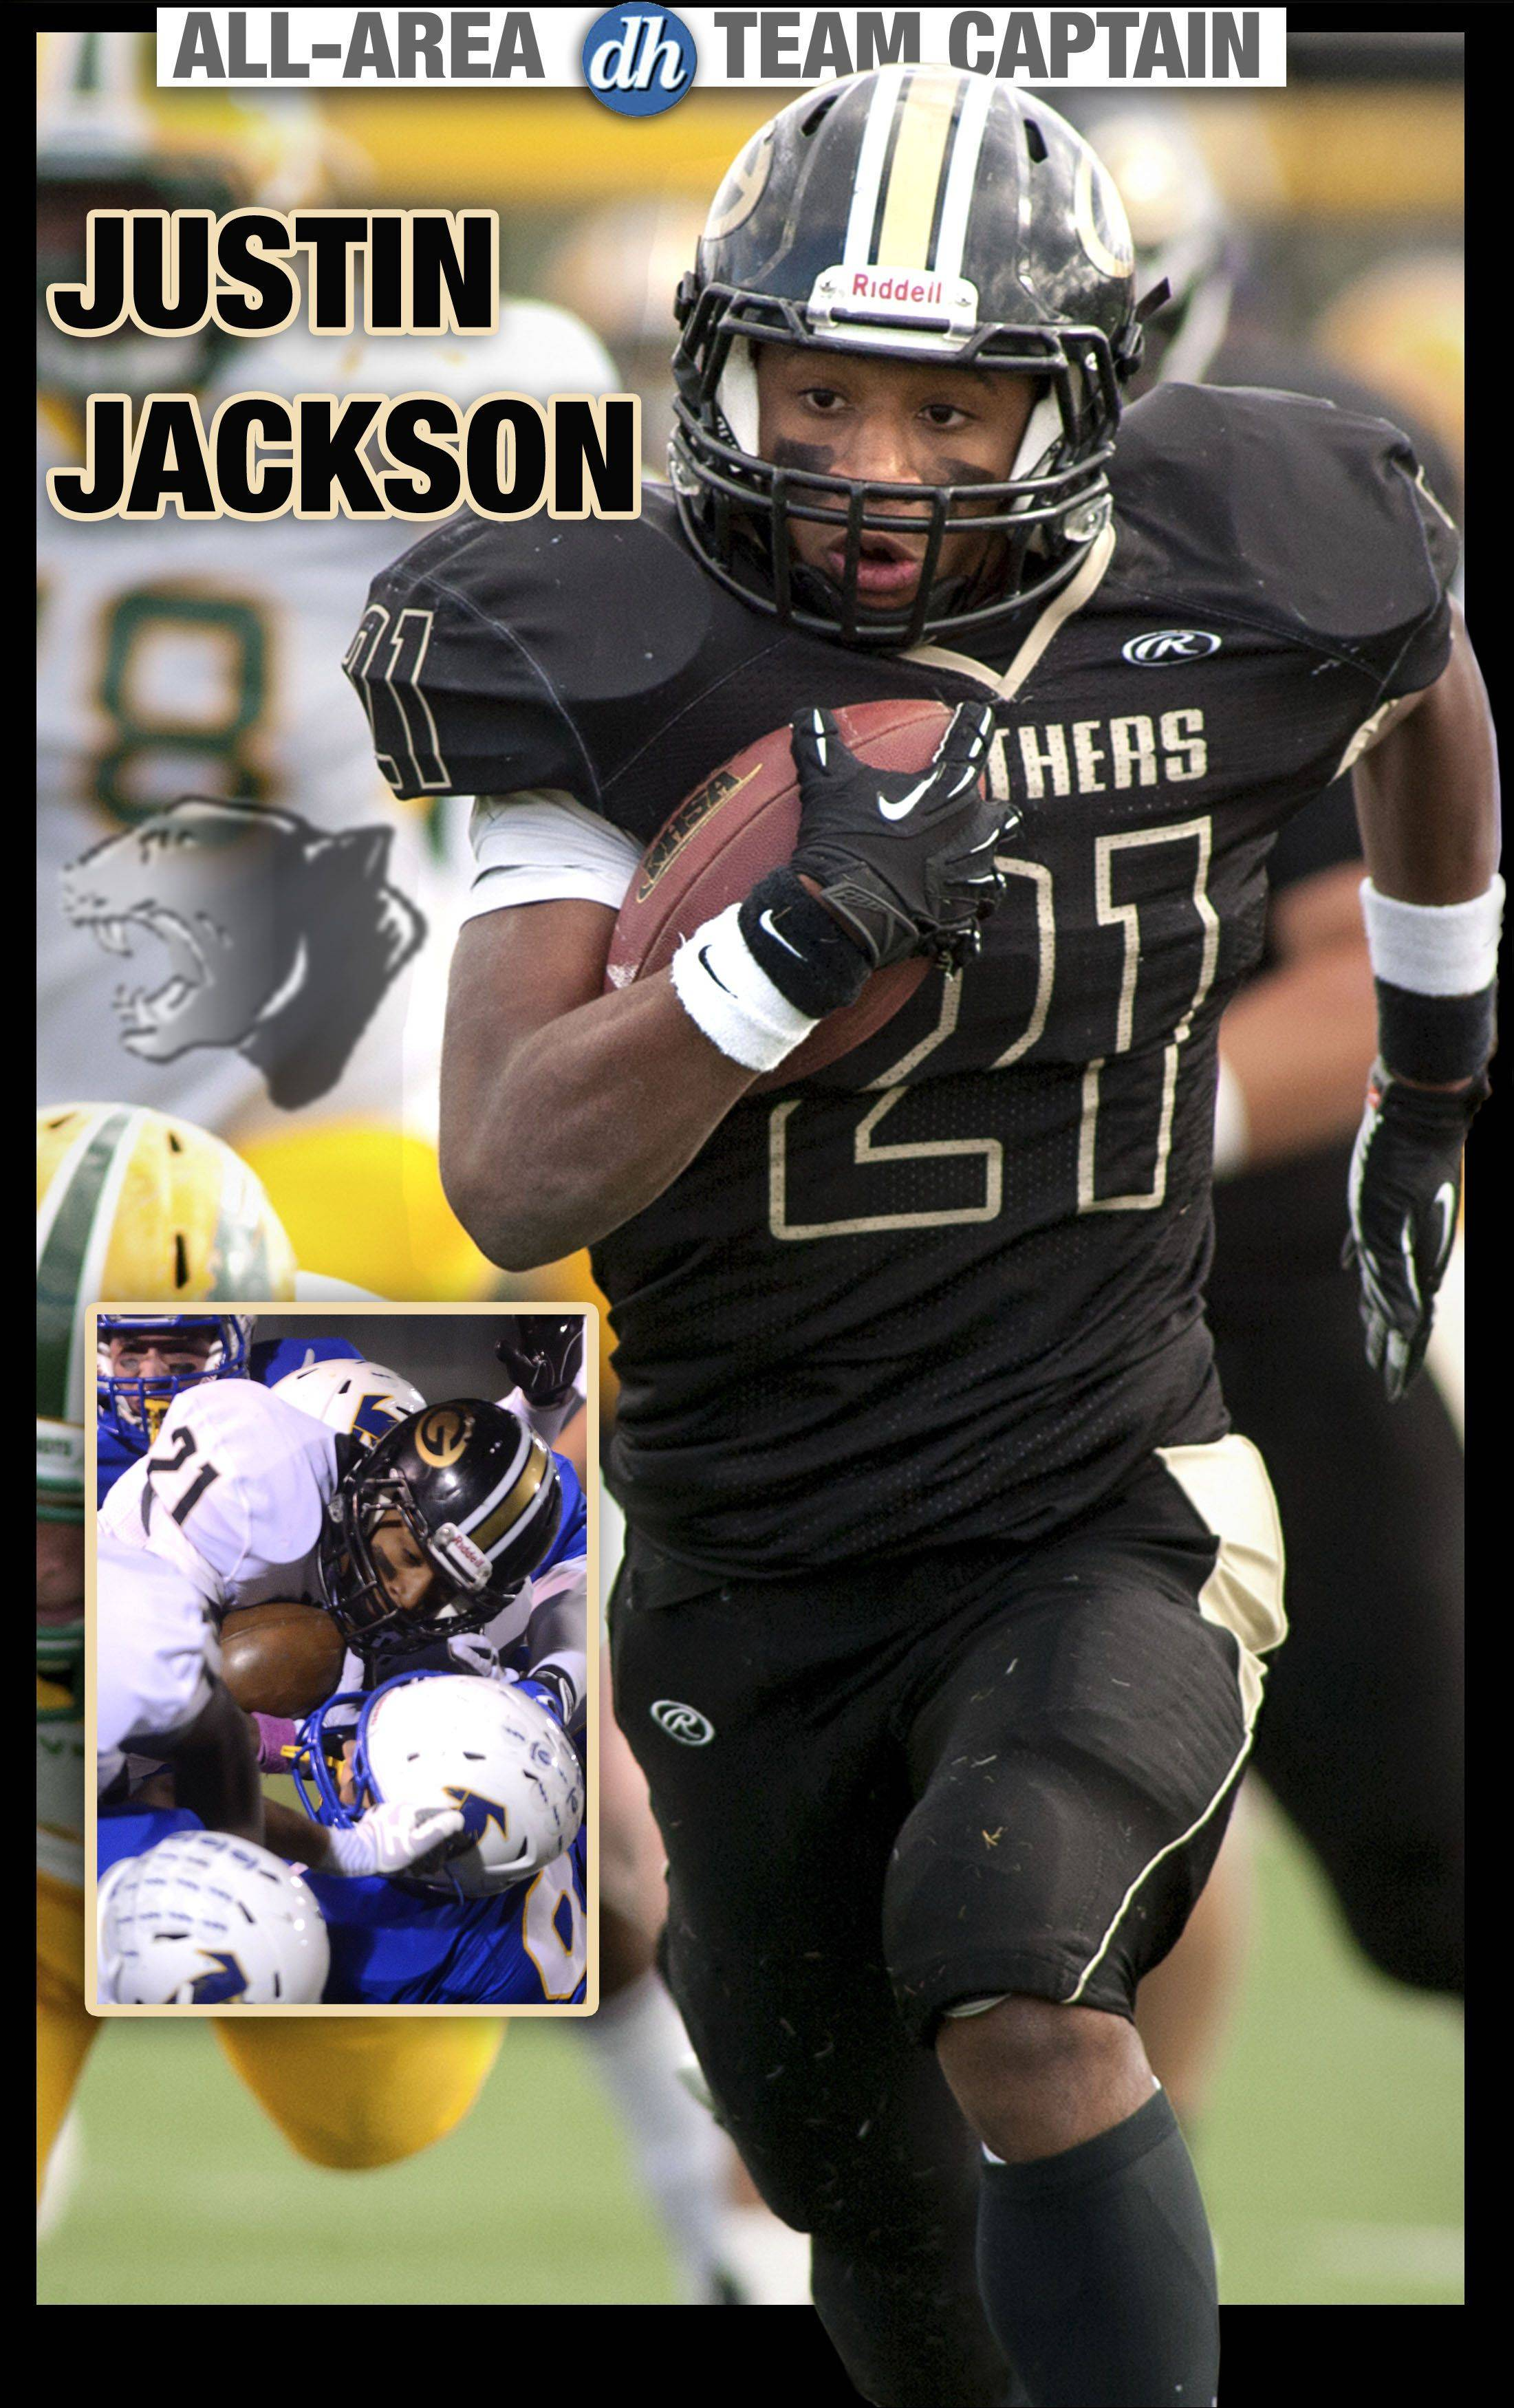 Justin Jackson of Glenbard North is a Daily Herald All-Area Team Captain in football for 2013.